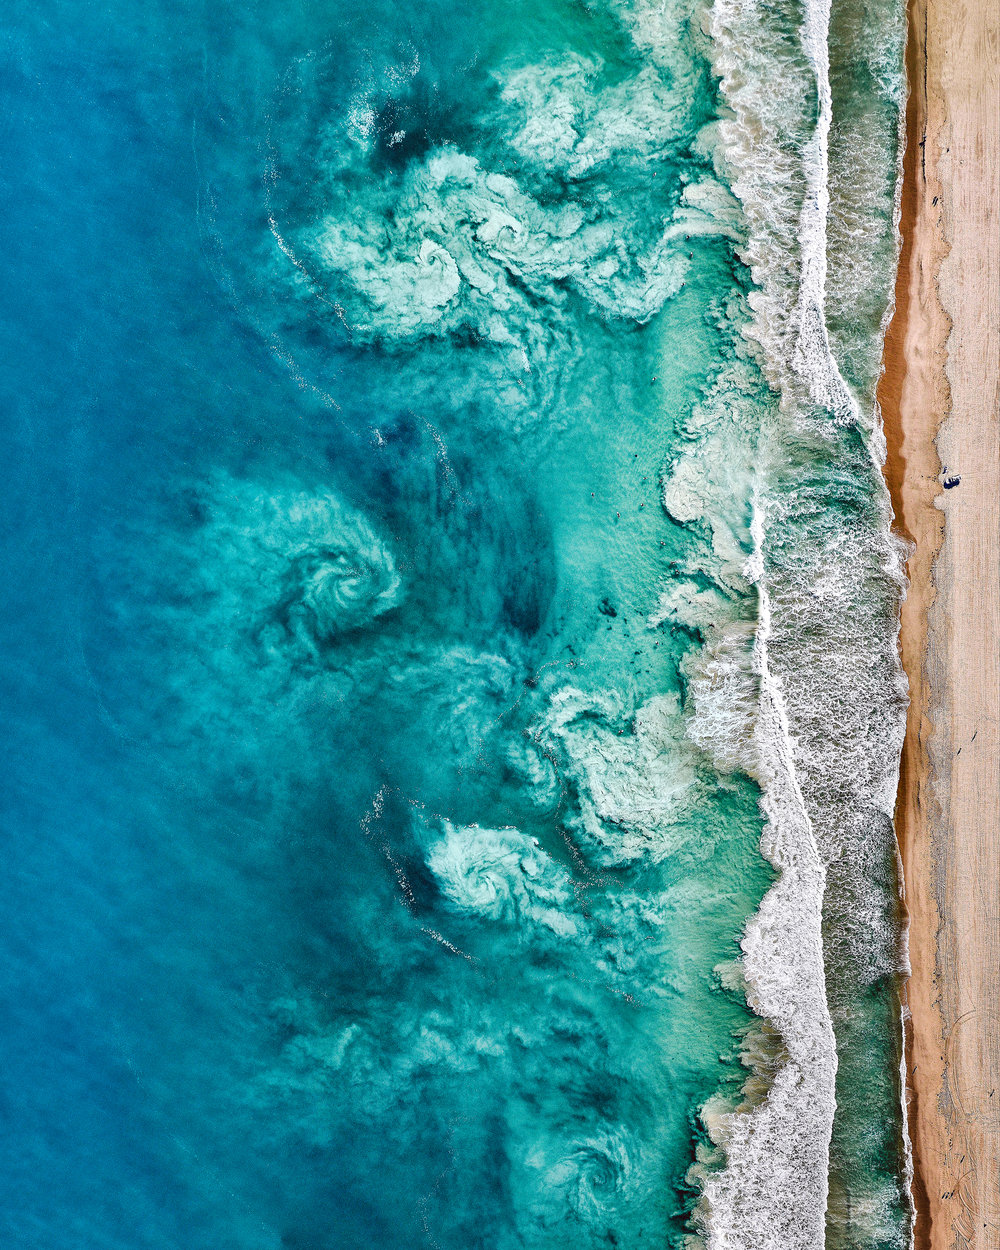 "With just hours left in 2018, we're sharing one more of our favorite Overviews created this year. This amazing shot shows swirling waves offshore Perth, Australia. The beaches in Perth are world-famous for their beautiful white sand and clear blue water. A sincere thank you to everyone who shared an image, purchased a print or a copy of ""Overview,"" or simply followed along in 2018. Happy New Year!  31°57'04.5""S, 115°45'14.9""E  Source imagery: Nearmap"